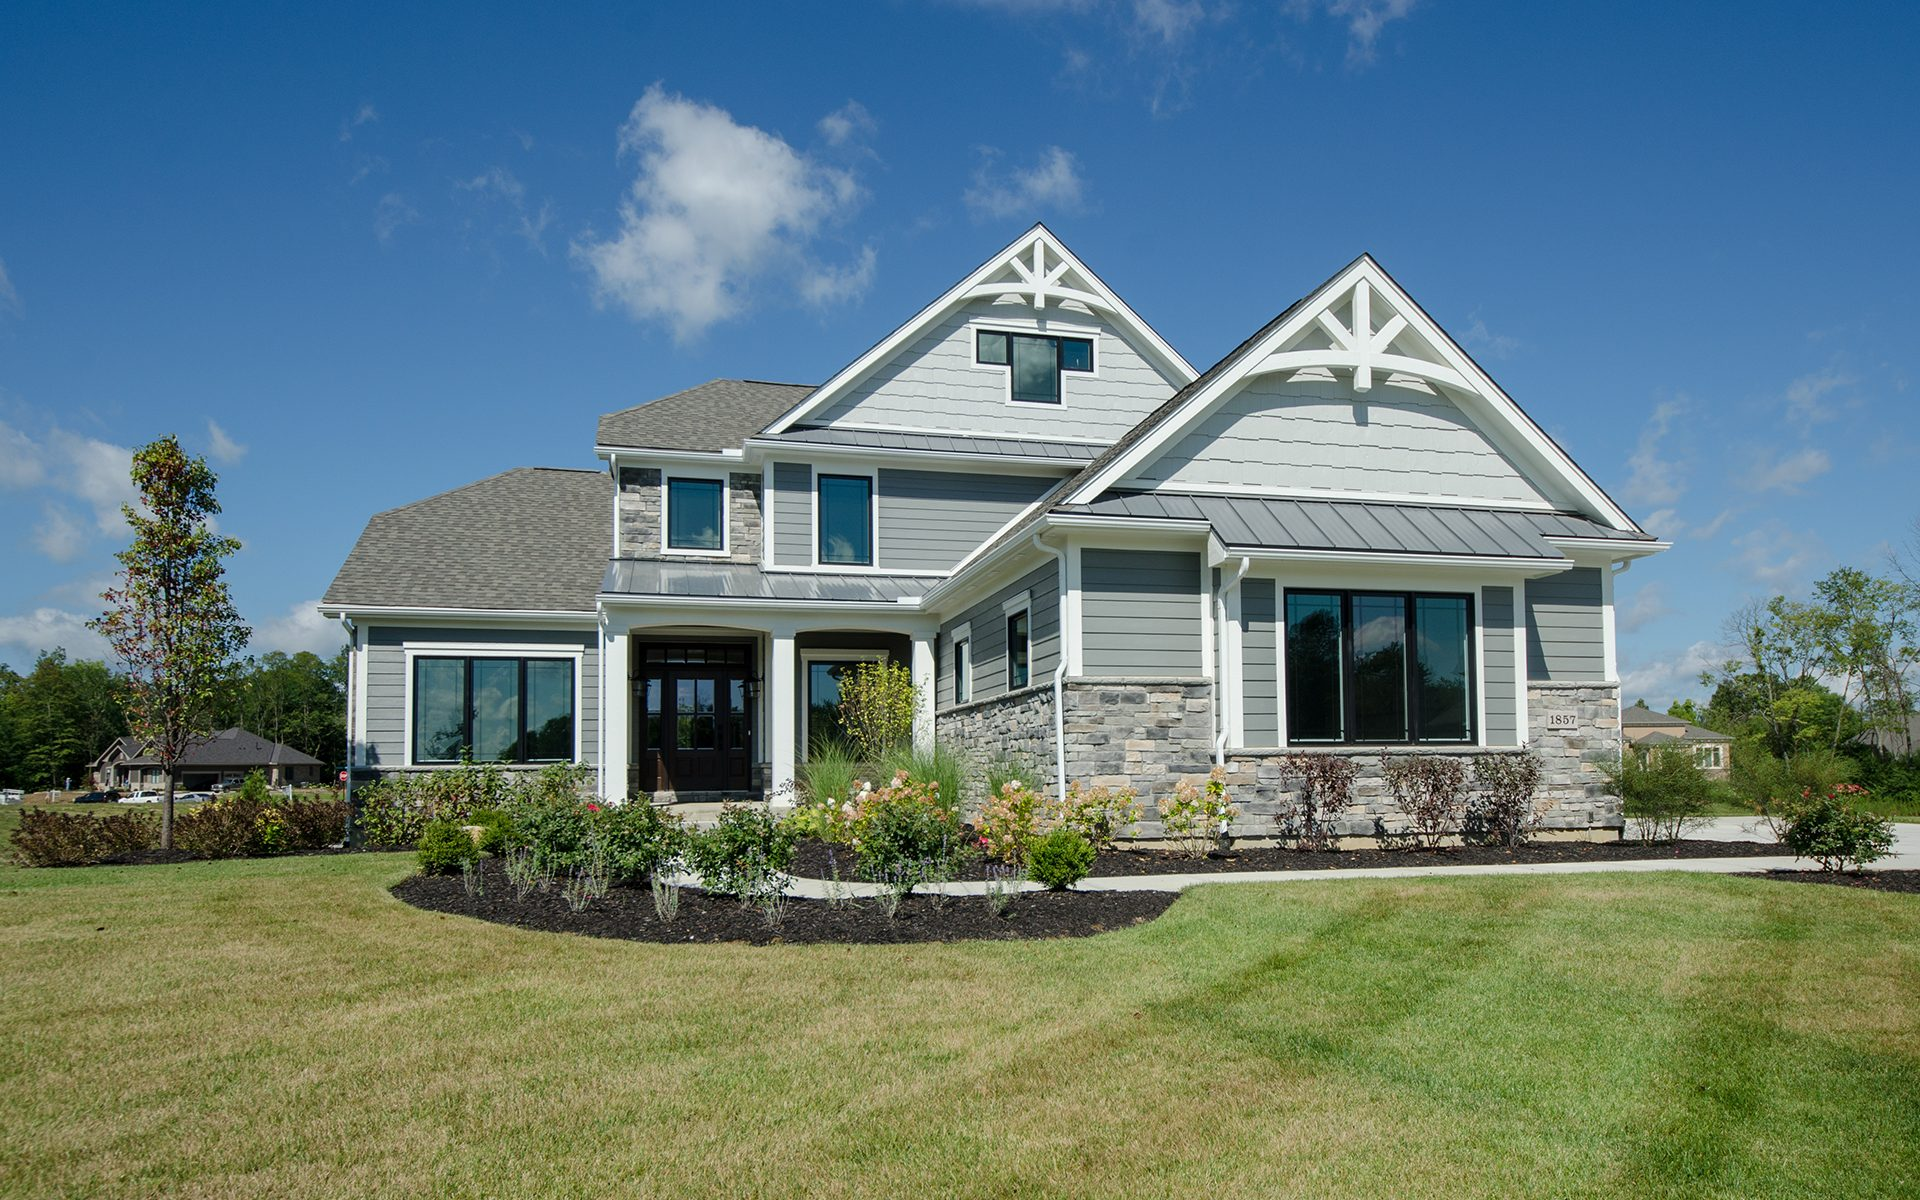 Start Building Your Dream Home Today With Design Homes U0026 Development Co.